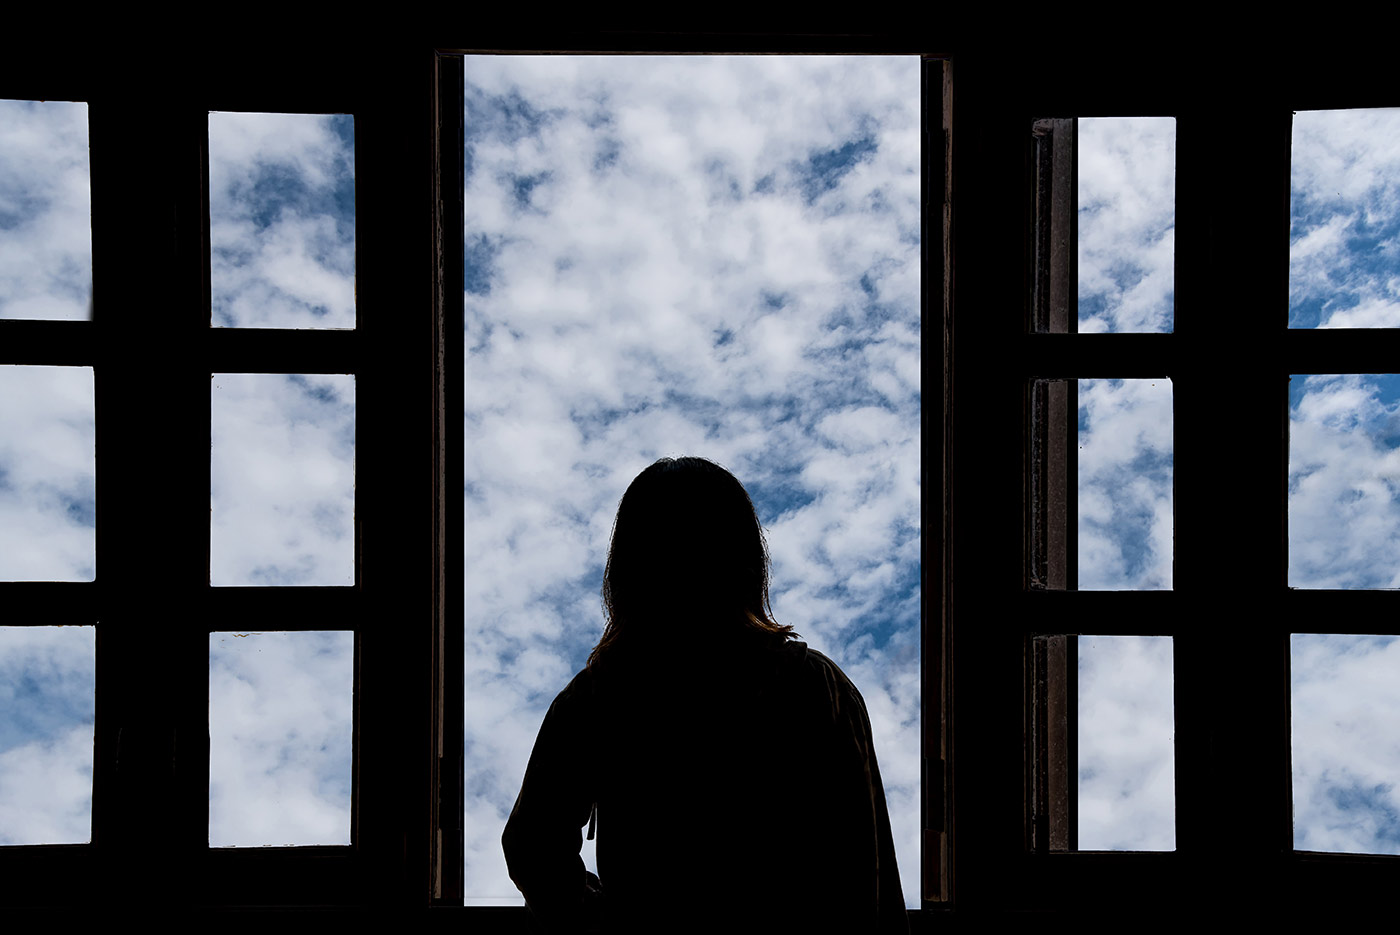 Silhouette of a person looking out of a window with a blue sky beyond. - click to view larger image